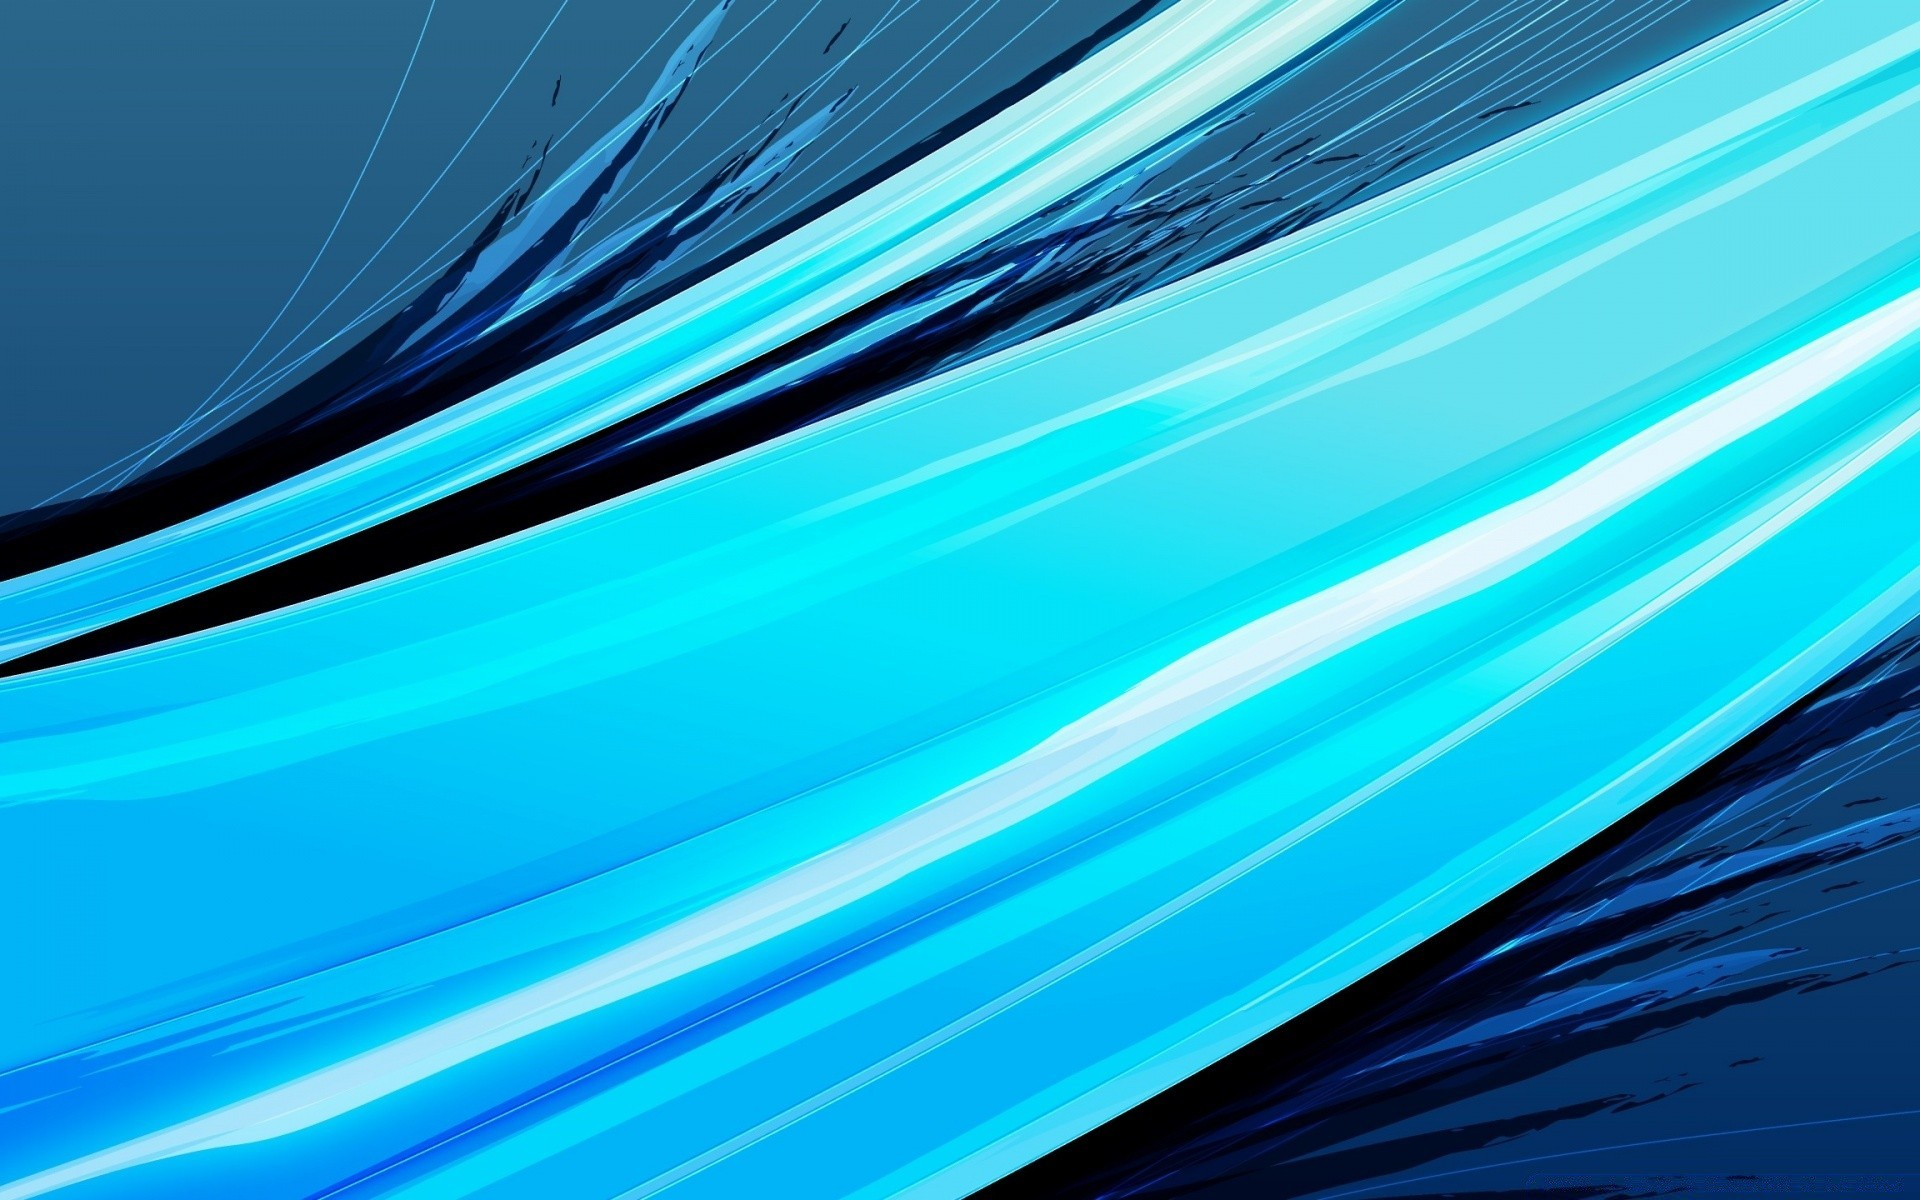 abstract graphic art blue i. desktop wallpapers for free.